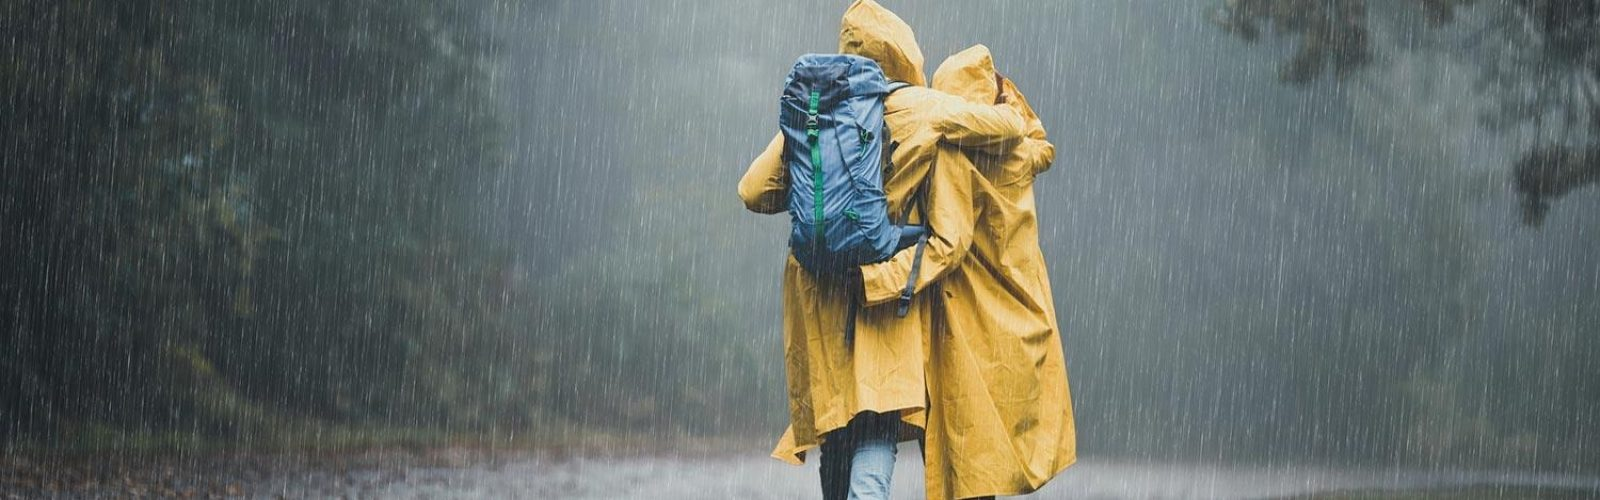 Things To Do When It Rains On Your Road Trip